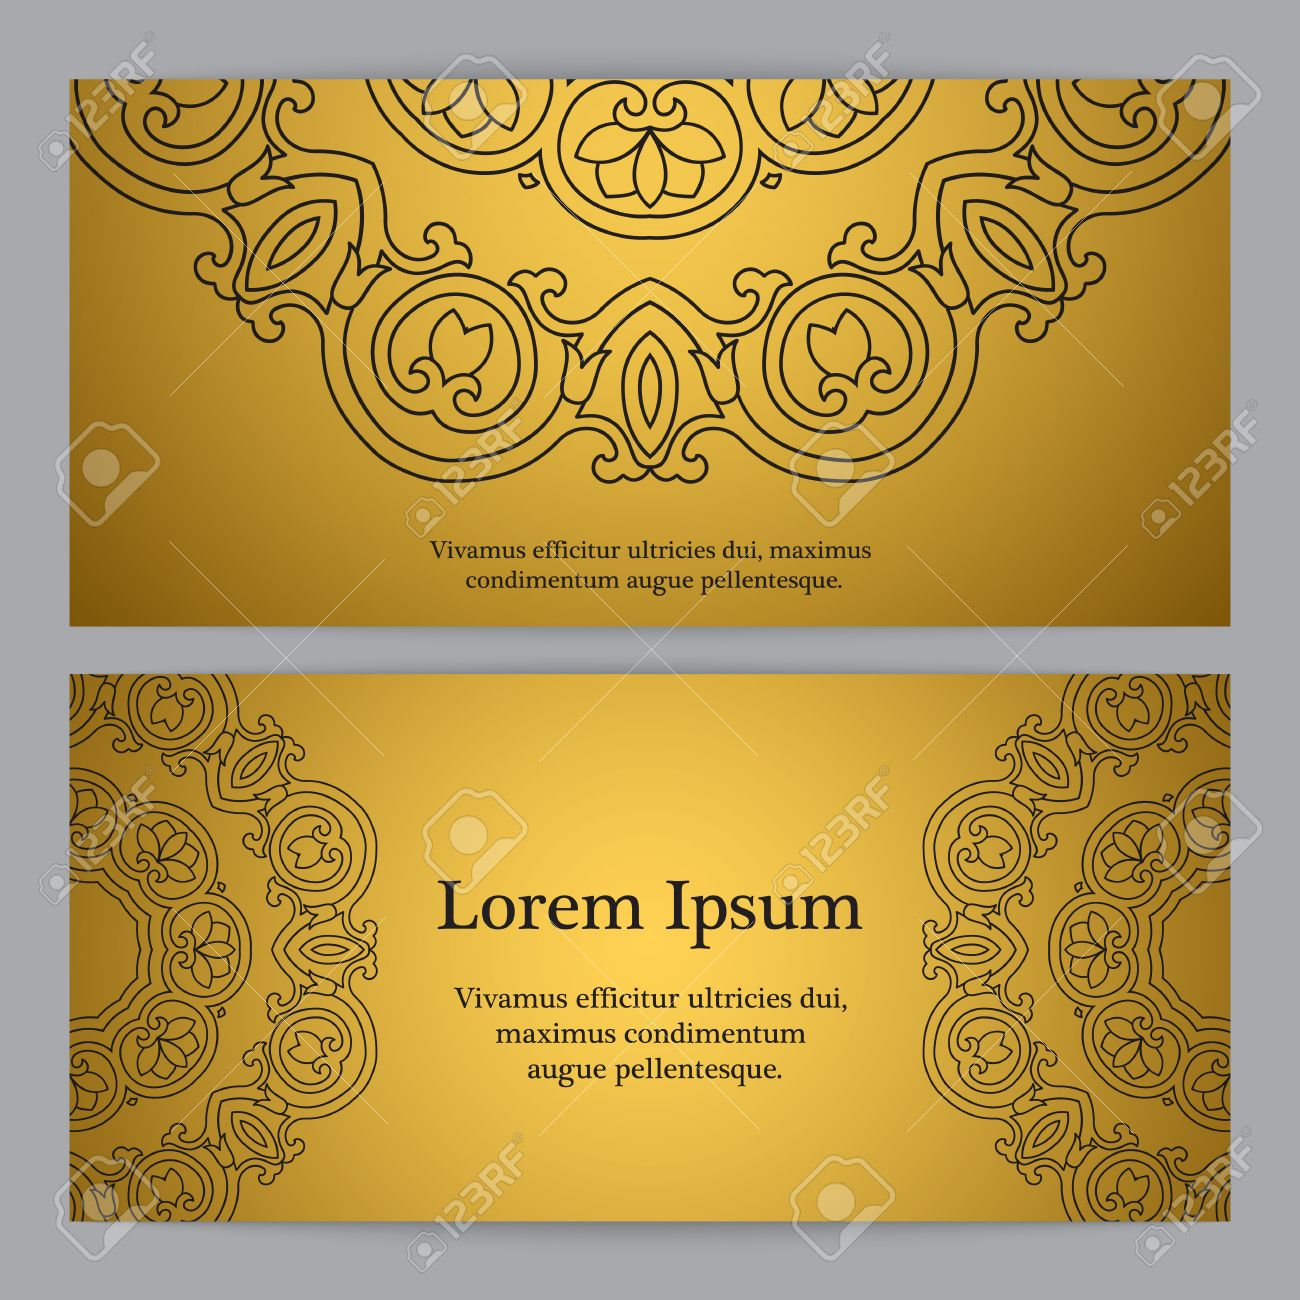 Background with gold ornament inspired by ottoman and islamic inspired by ottoman and islamic ornaments for wedding invitation stopboris Choice Image